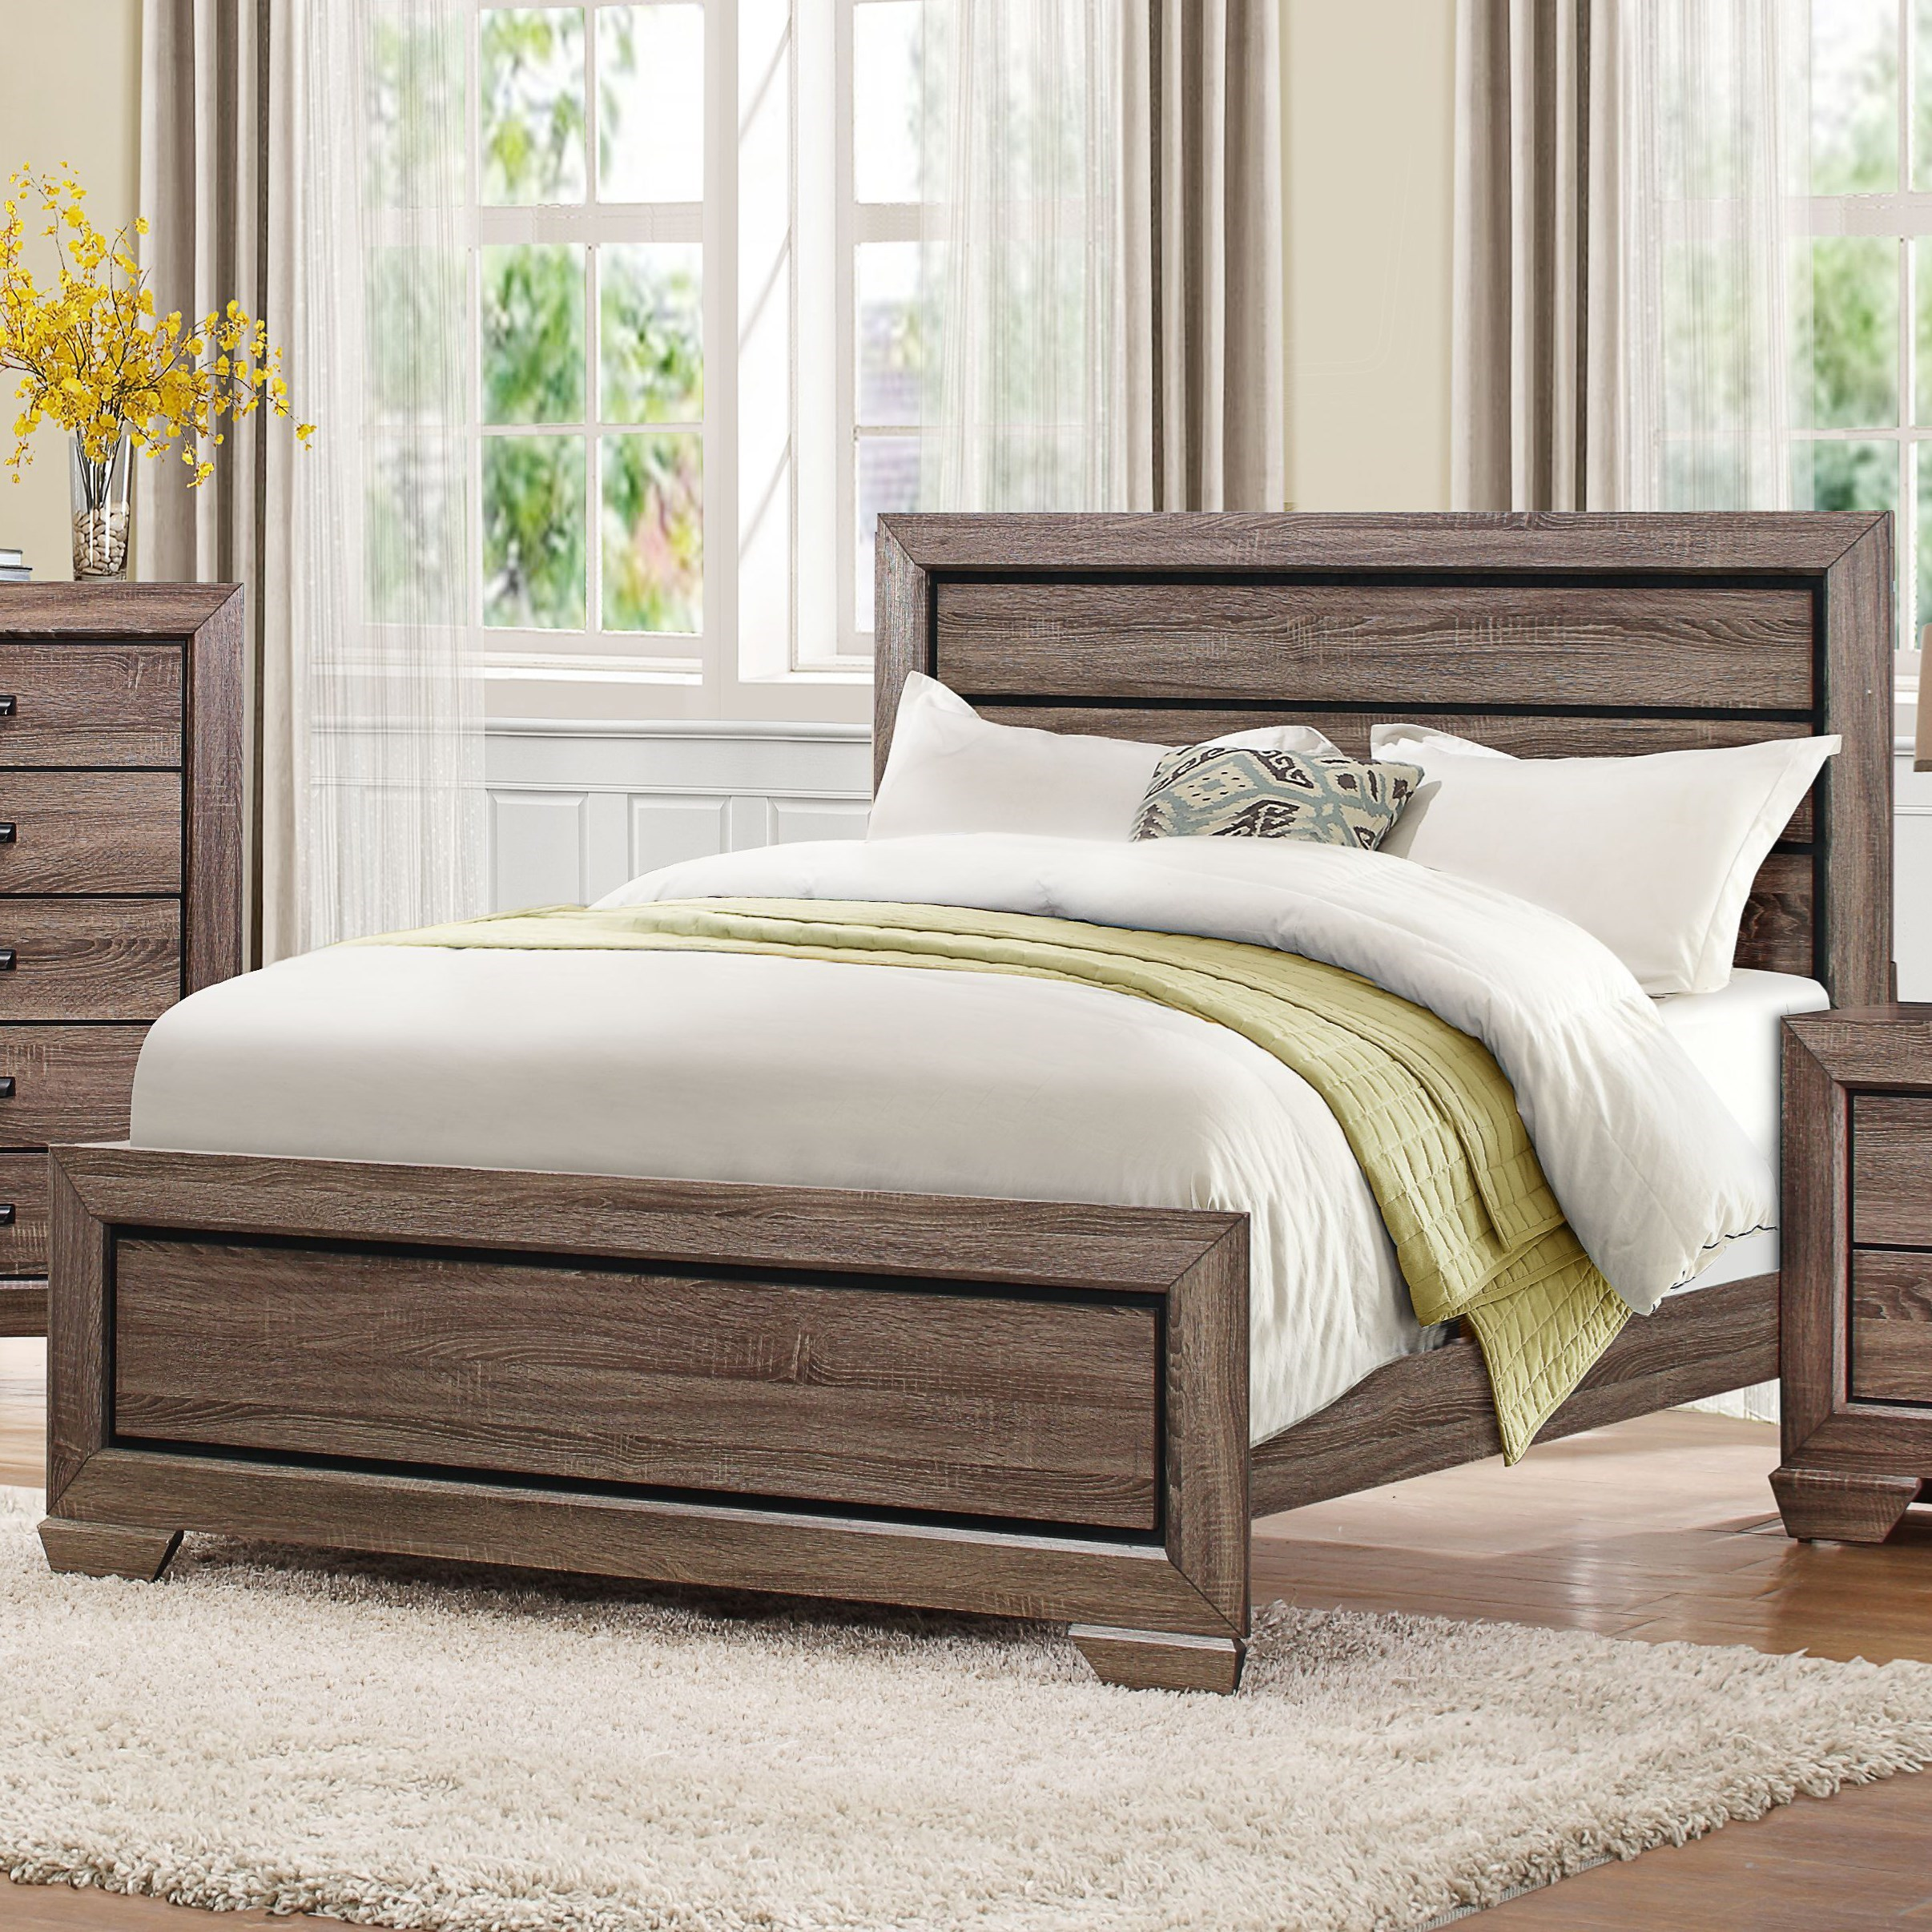 homelegance beechnut contemporary king headboard and footboard with dark under paneling. Black Bedroom Furniture Sets. Home Design Ideas